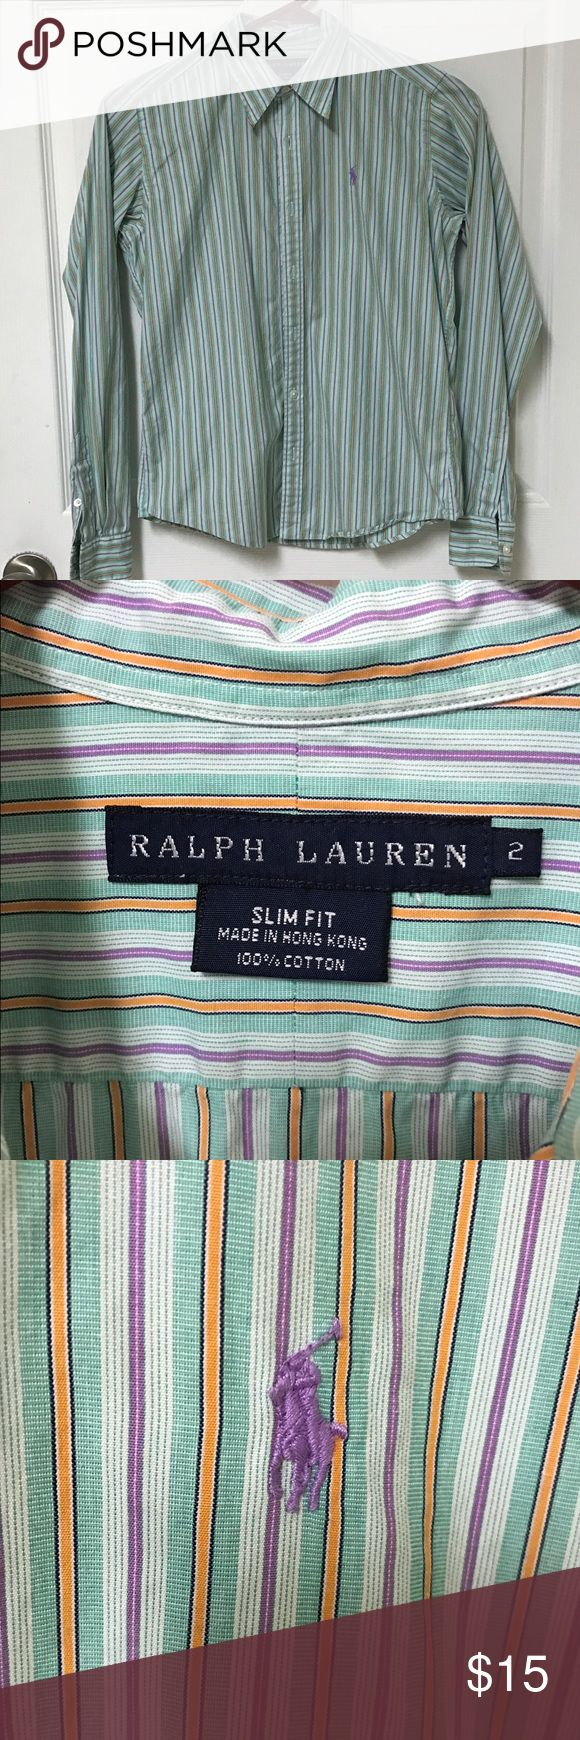 Polo collared shirt Polo striped collared shirt. Turquoise, purple, orange, white, navy stripes. Size 2 slim fit. Very well taken care of. (Check out my other listings for the matching Polo crew neck sweater). No trade. Polo by Ralph Lauren Tops Button Down Shirts